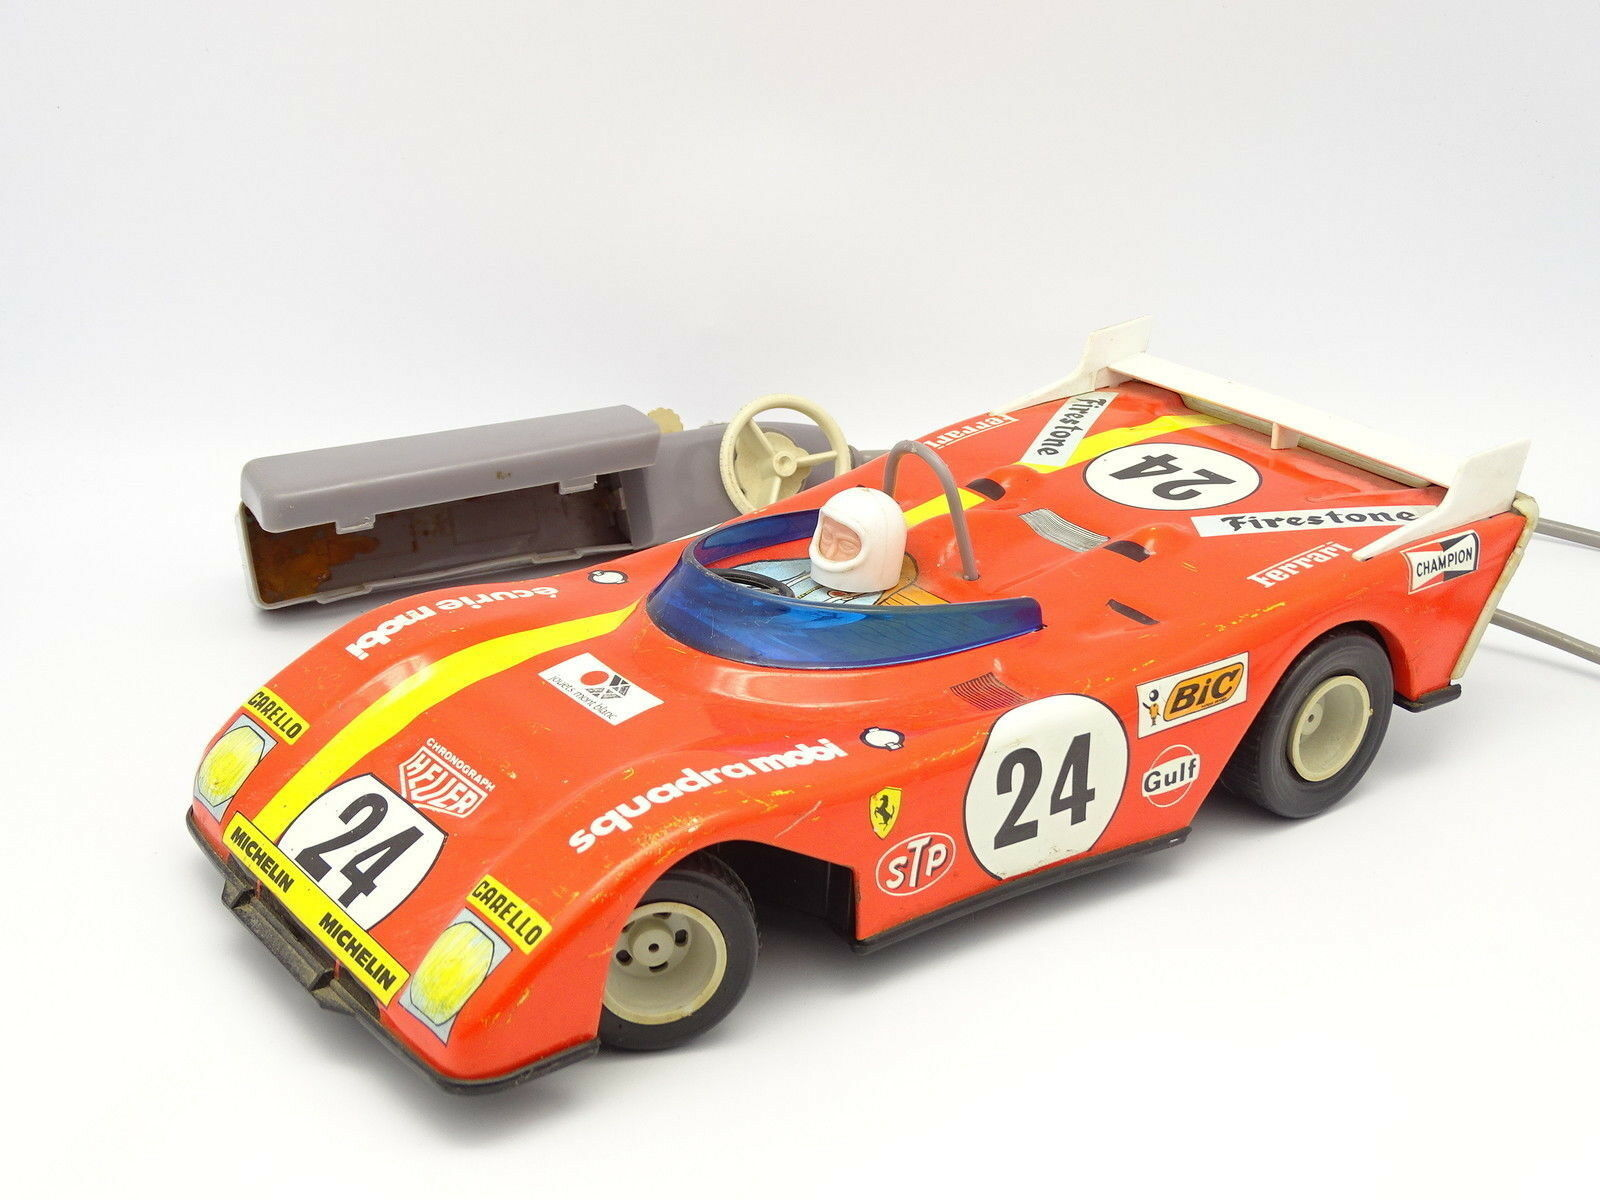 Toys Mount White - 30CM - Ferrari 512 Race